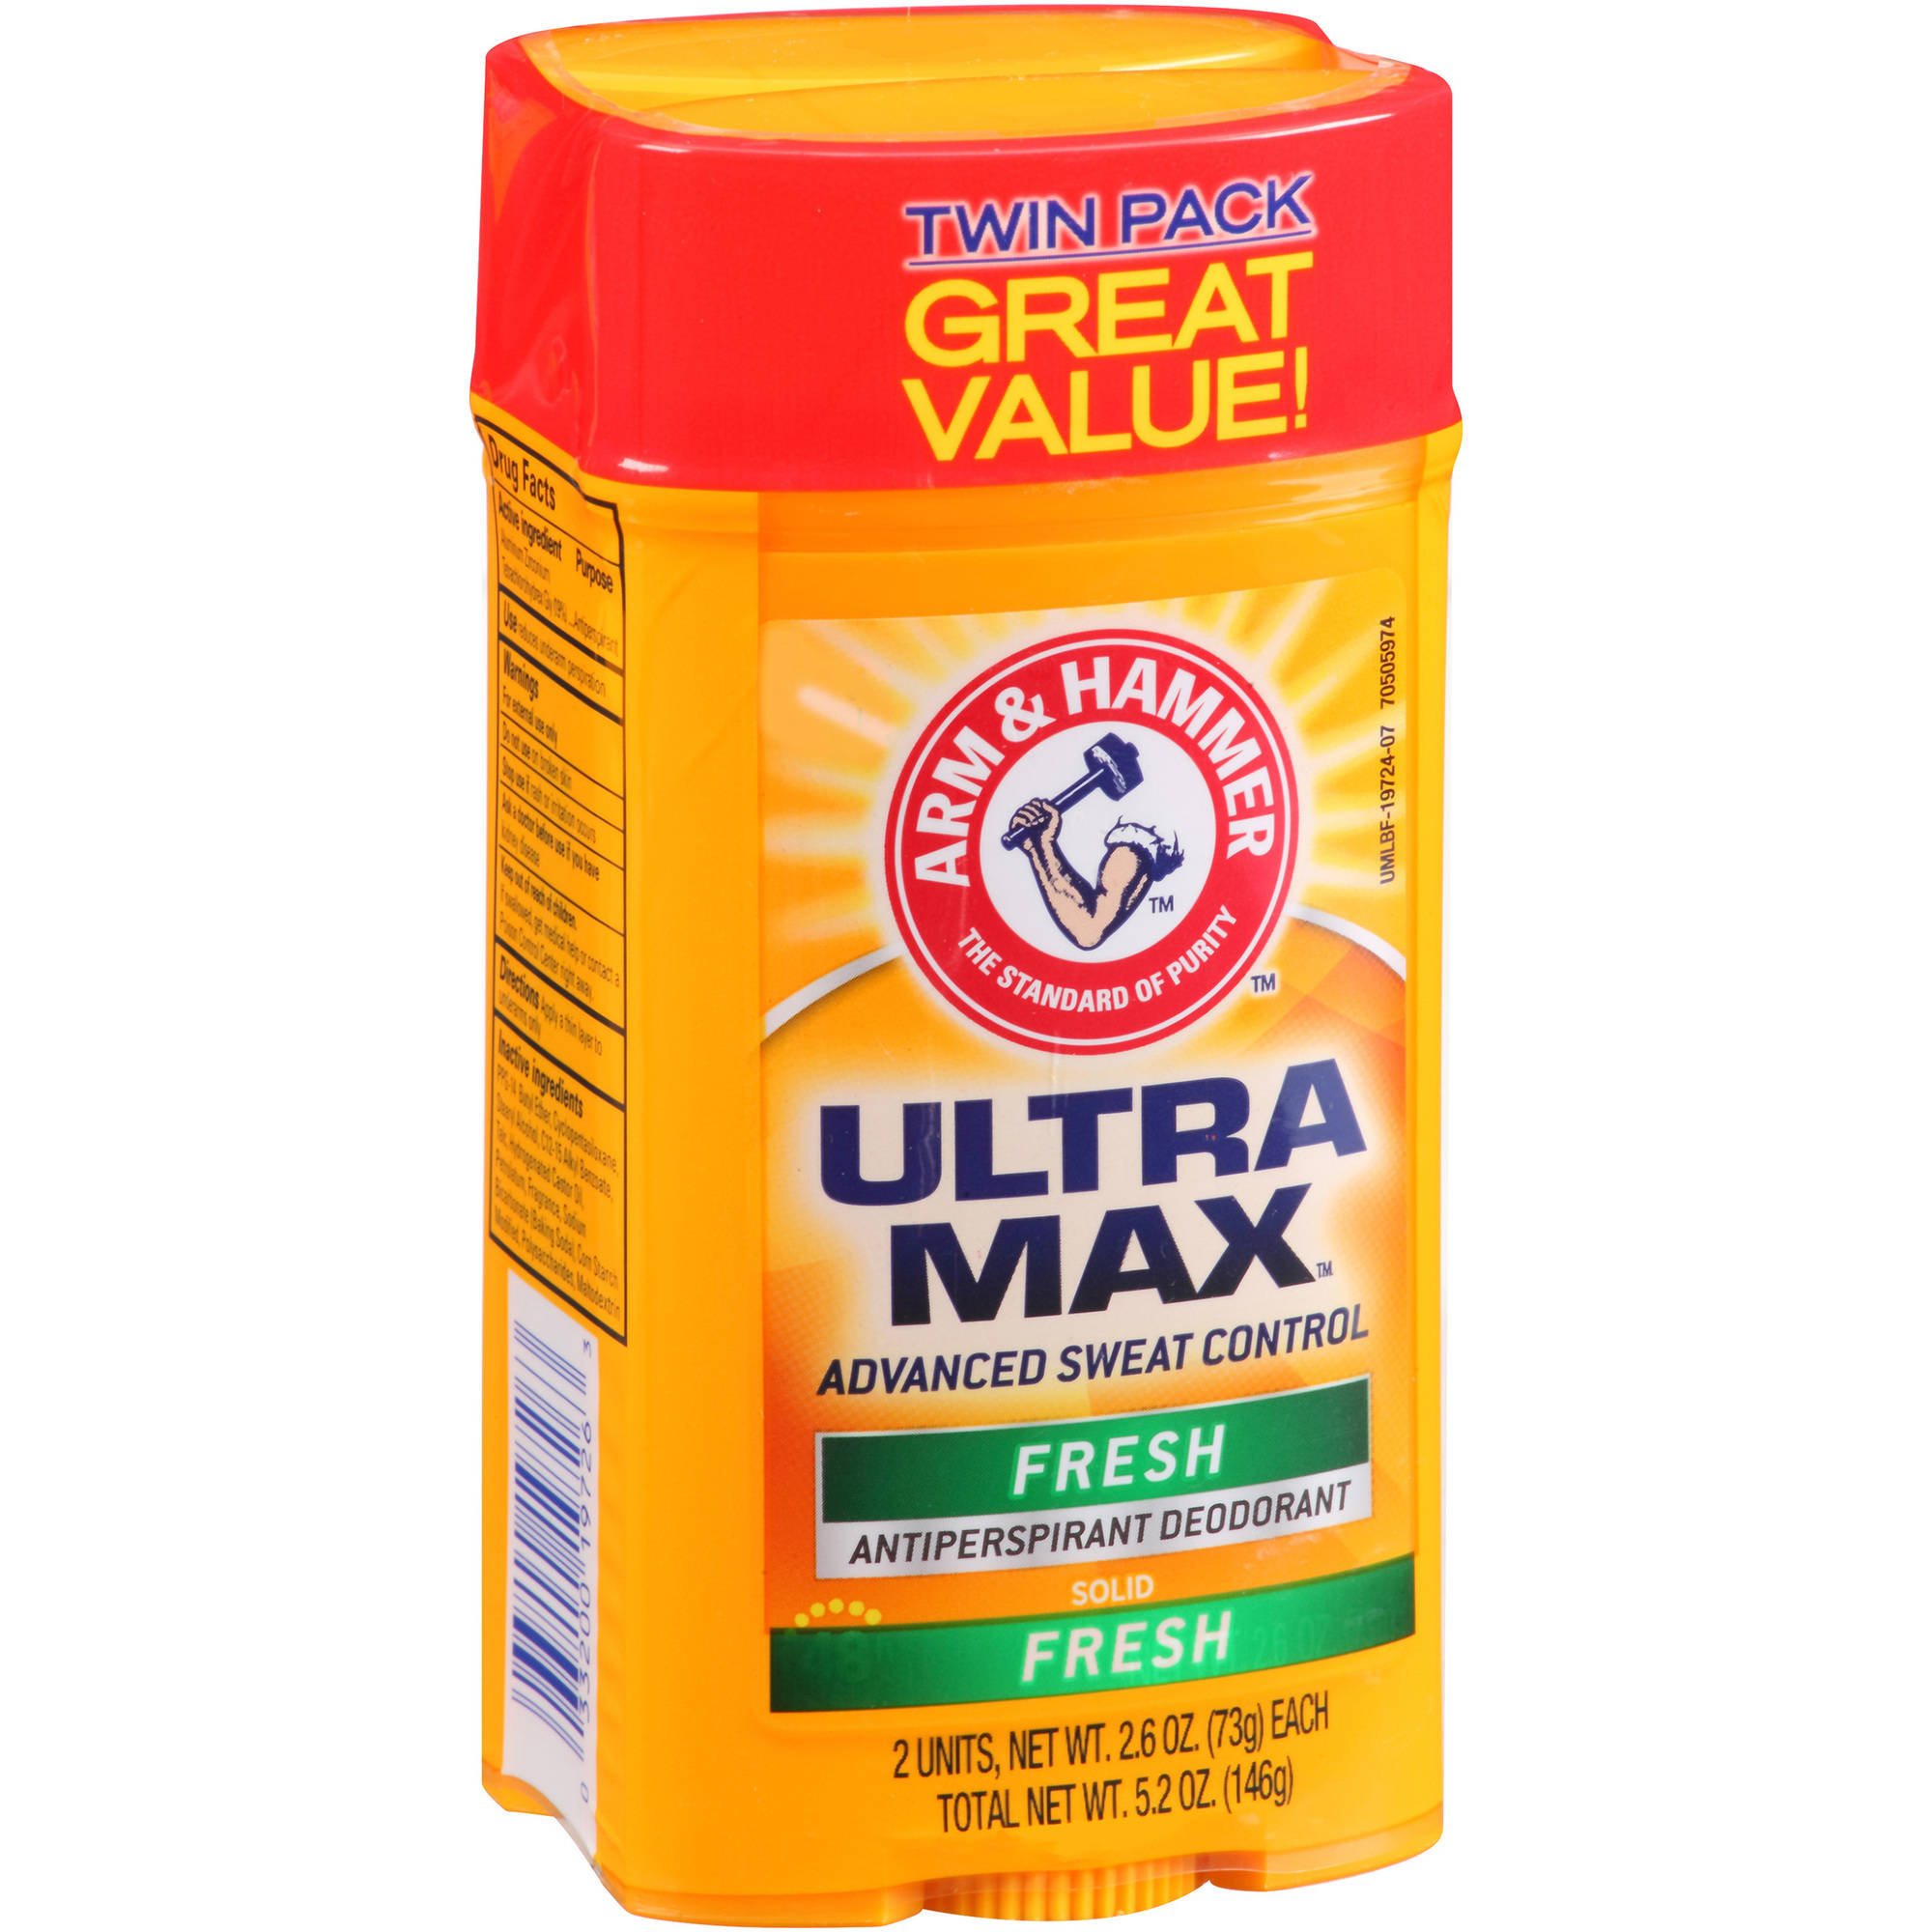 Arm & Hammer Ultra Max Advanced Sweat Control Fresh Solid Antiperspirant Deodorant, 2.6 oz, 2 count